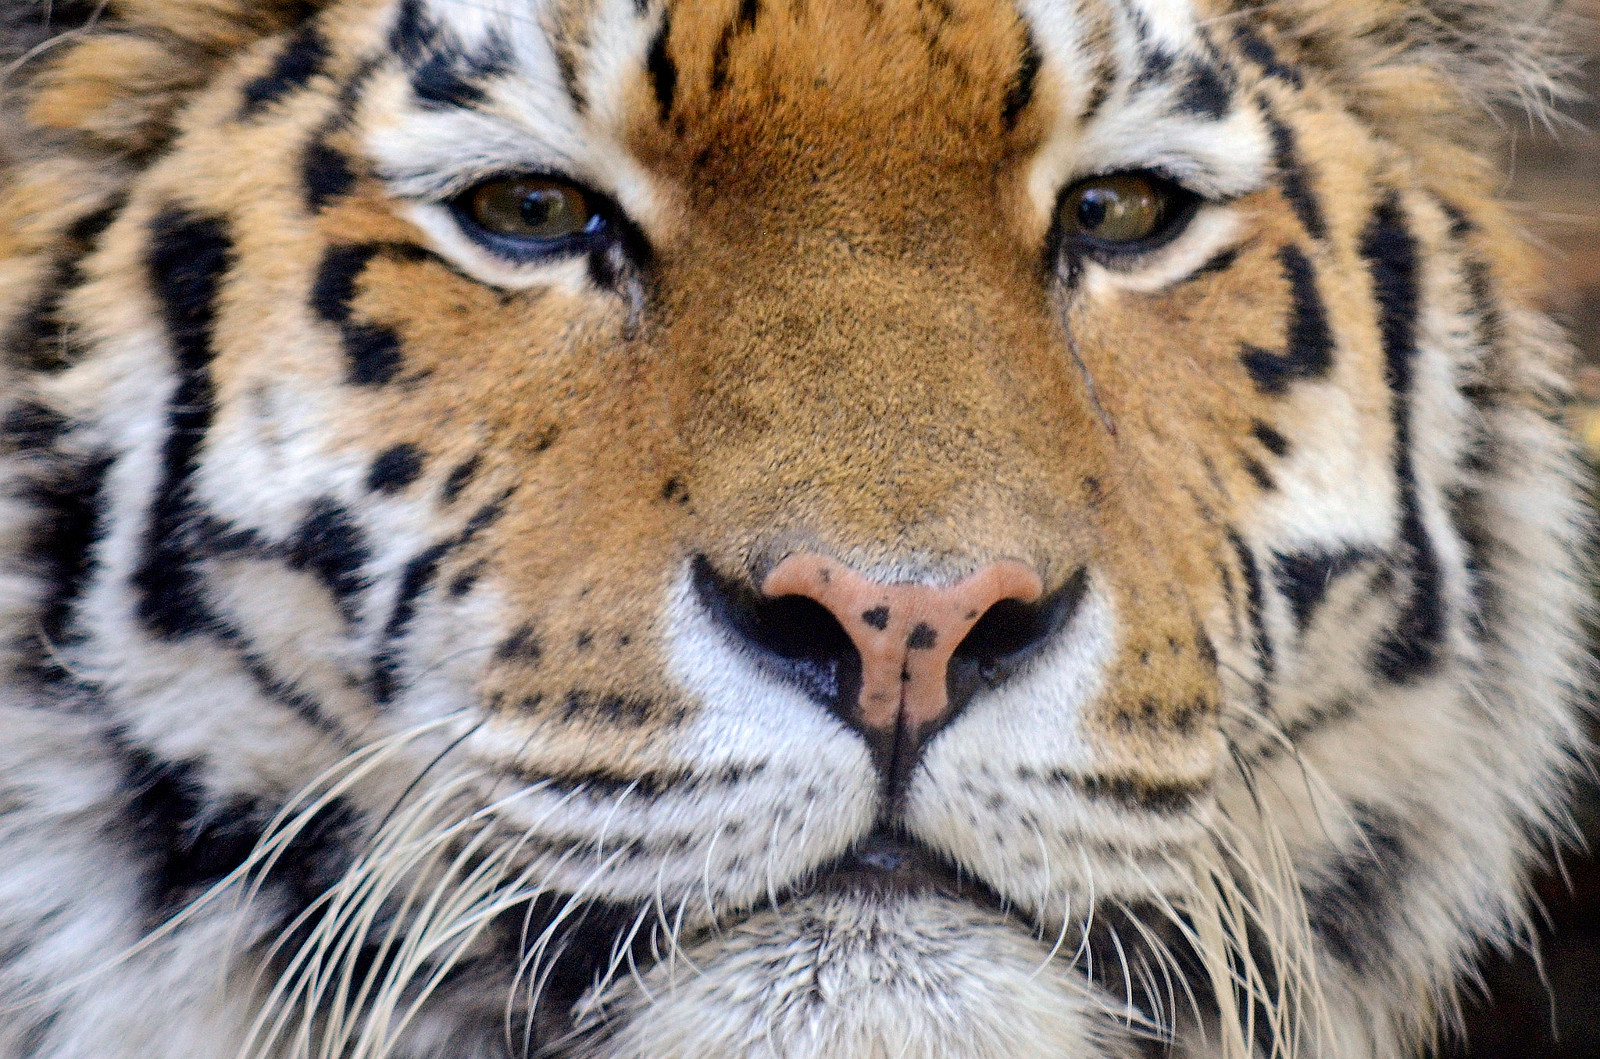 Suffering for the Sake of the Shot: How Using Wild Animals for Film and Photos Hurts Wildlife